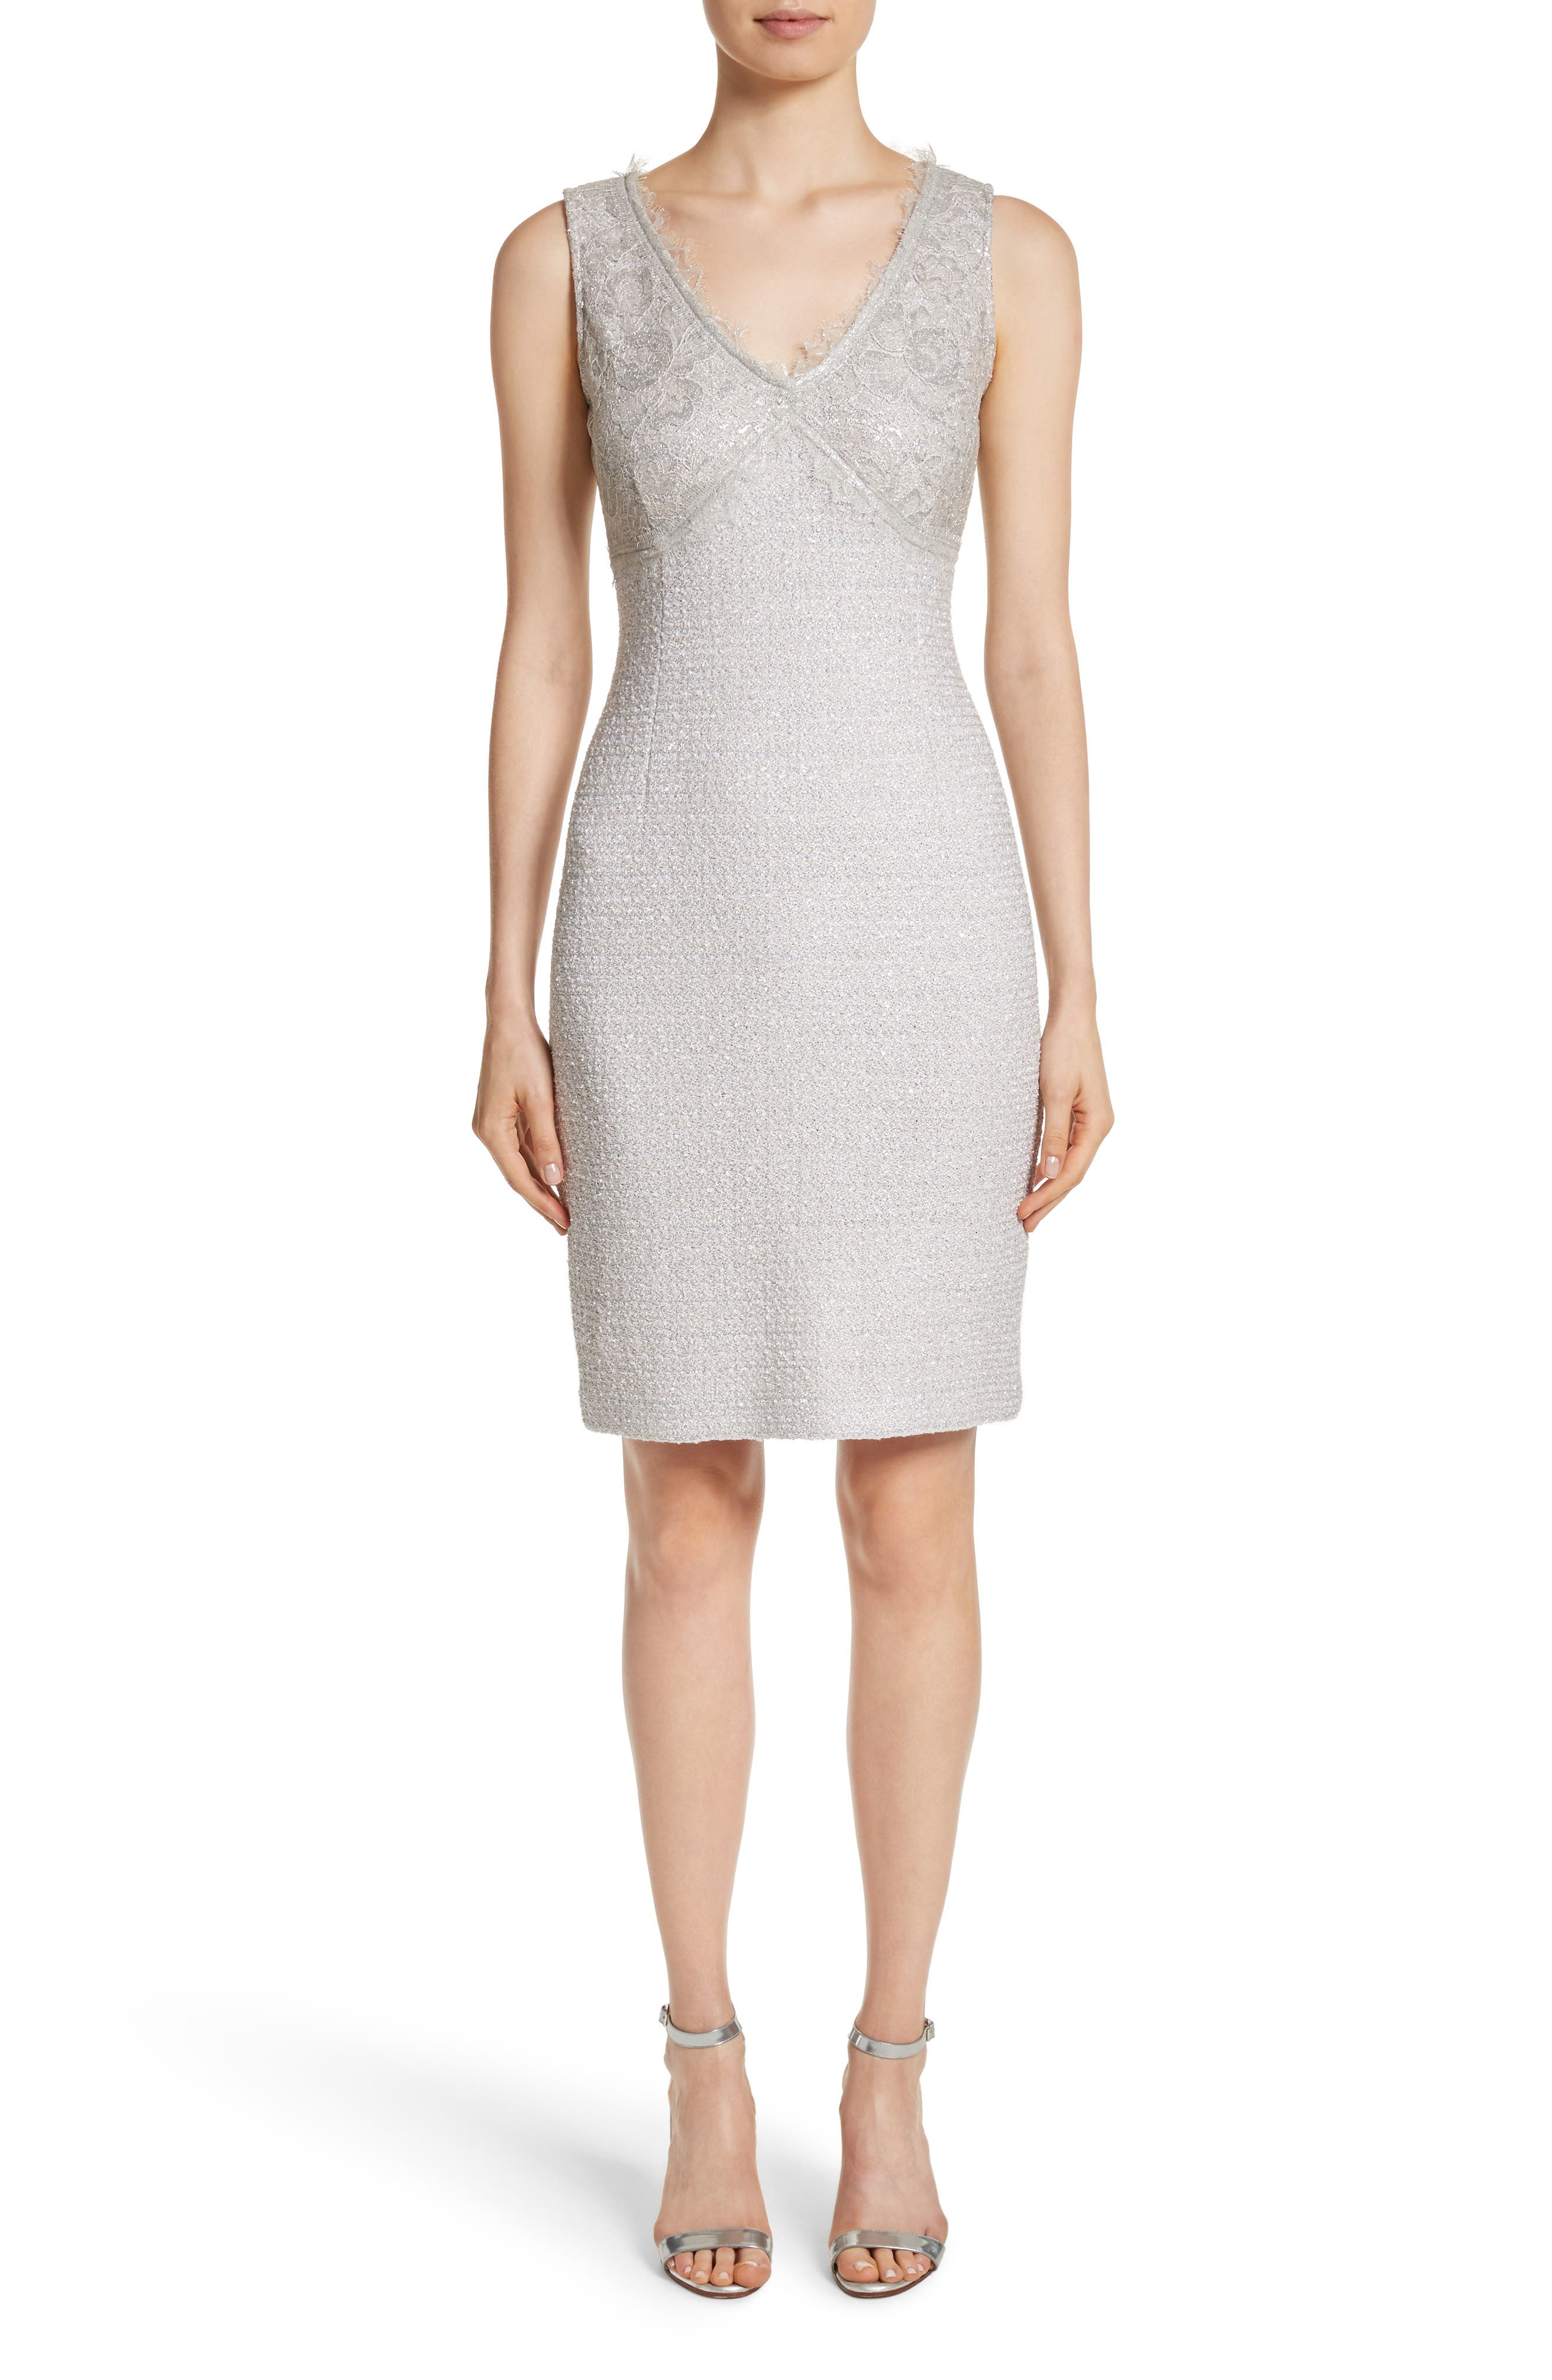 Alternate Image 1 Selected - St. John Collection Metallic Eyelash Knit Dress